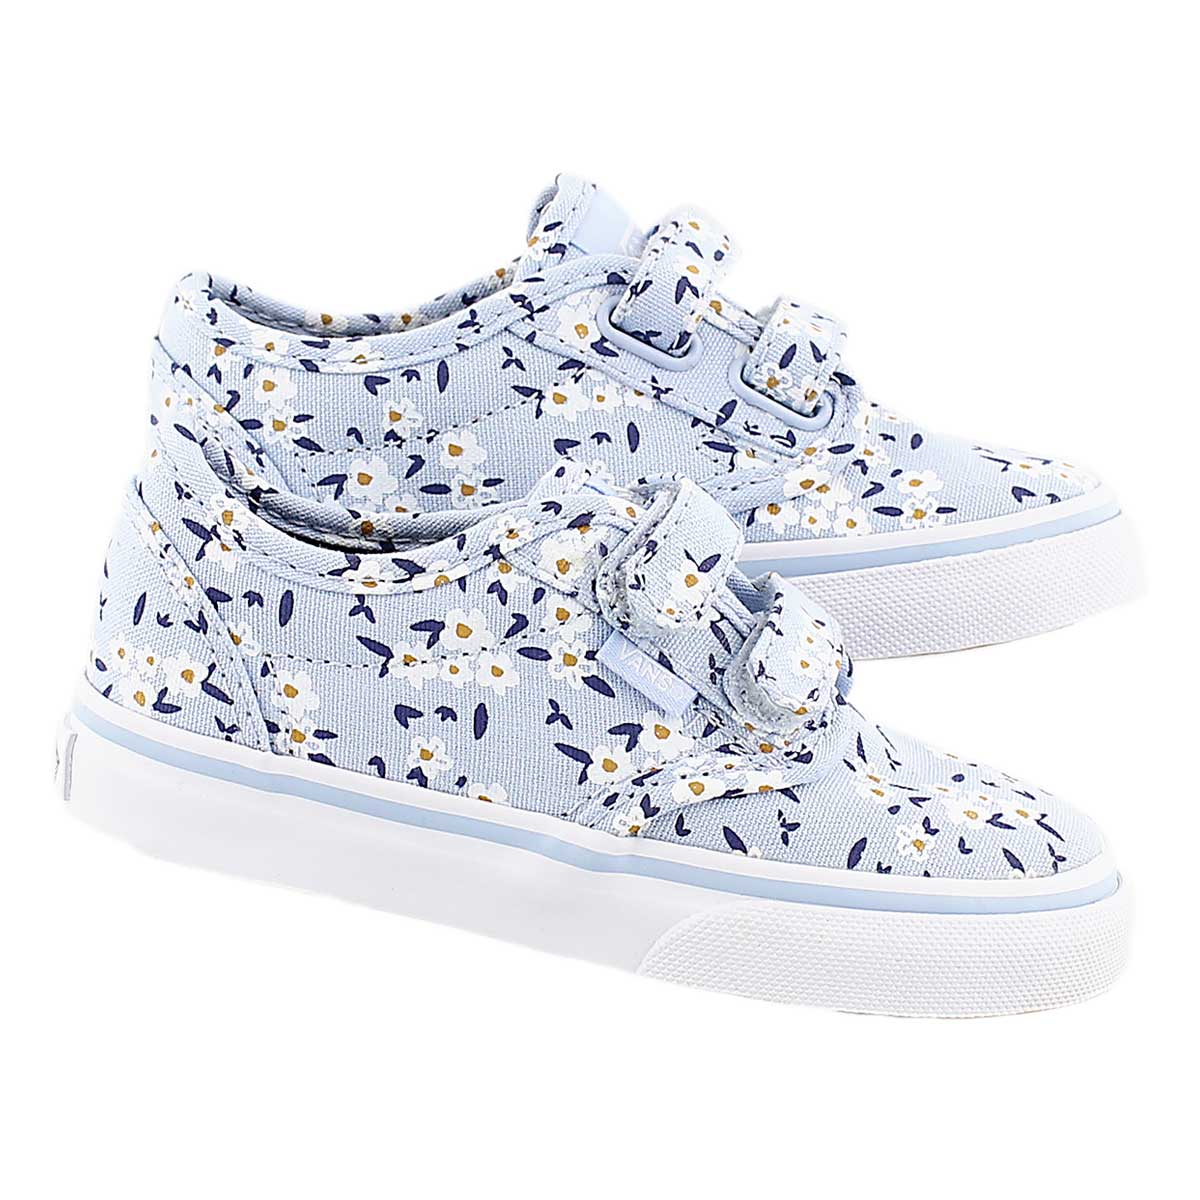 Infs Atwood blue floral print sneaker